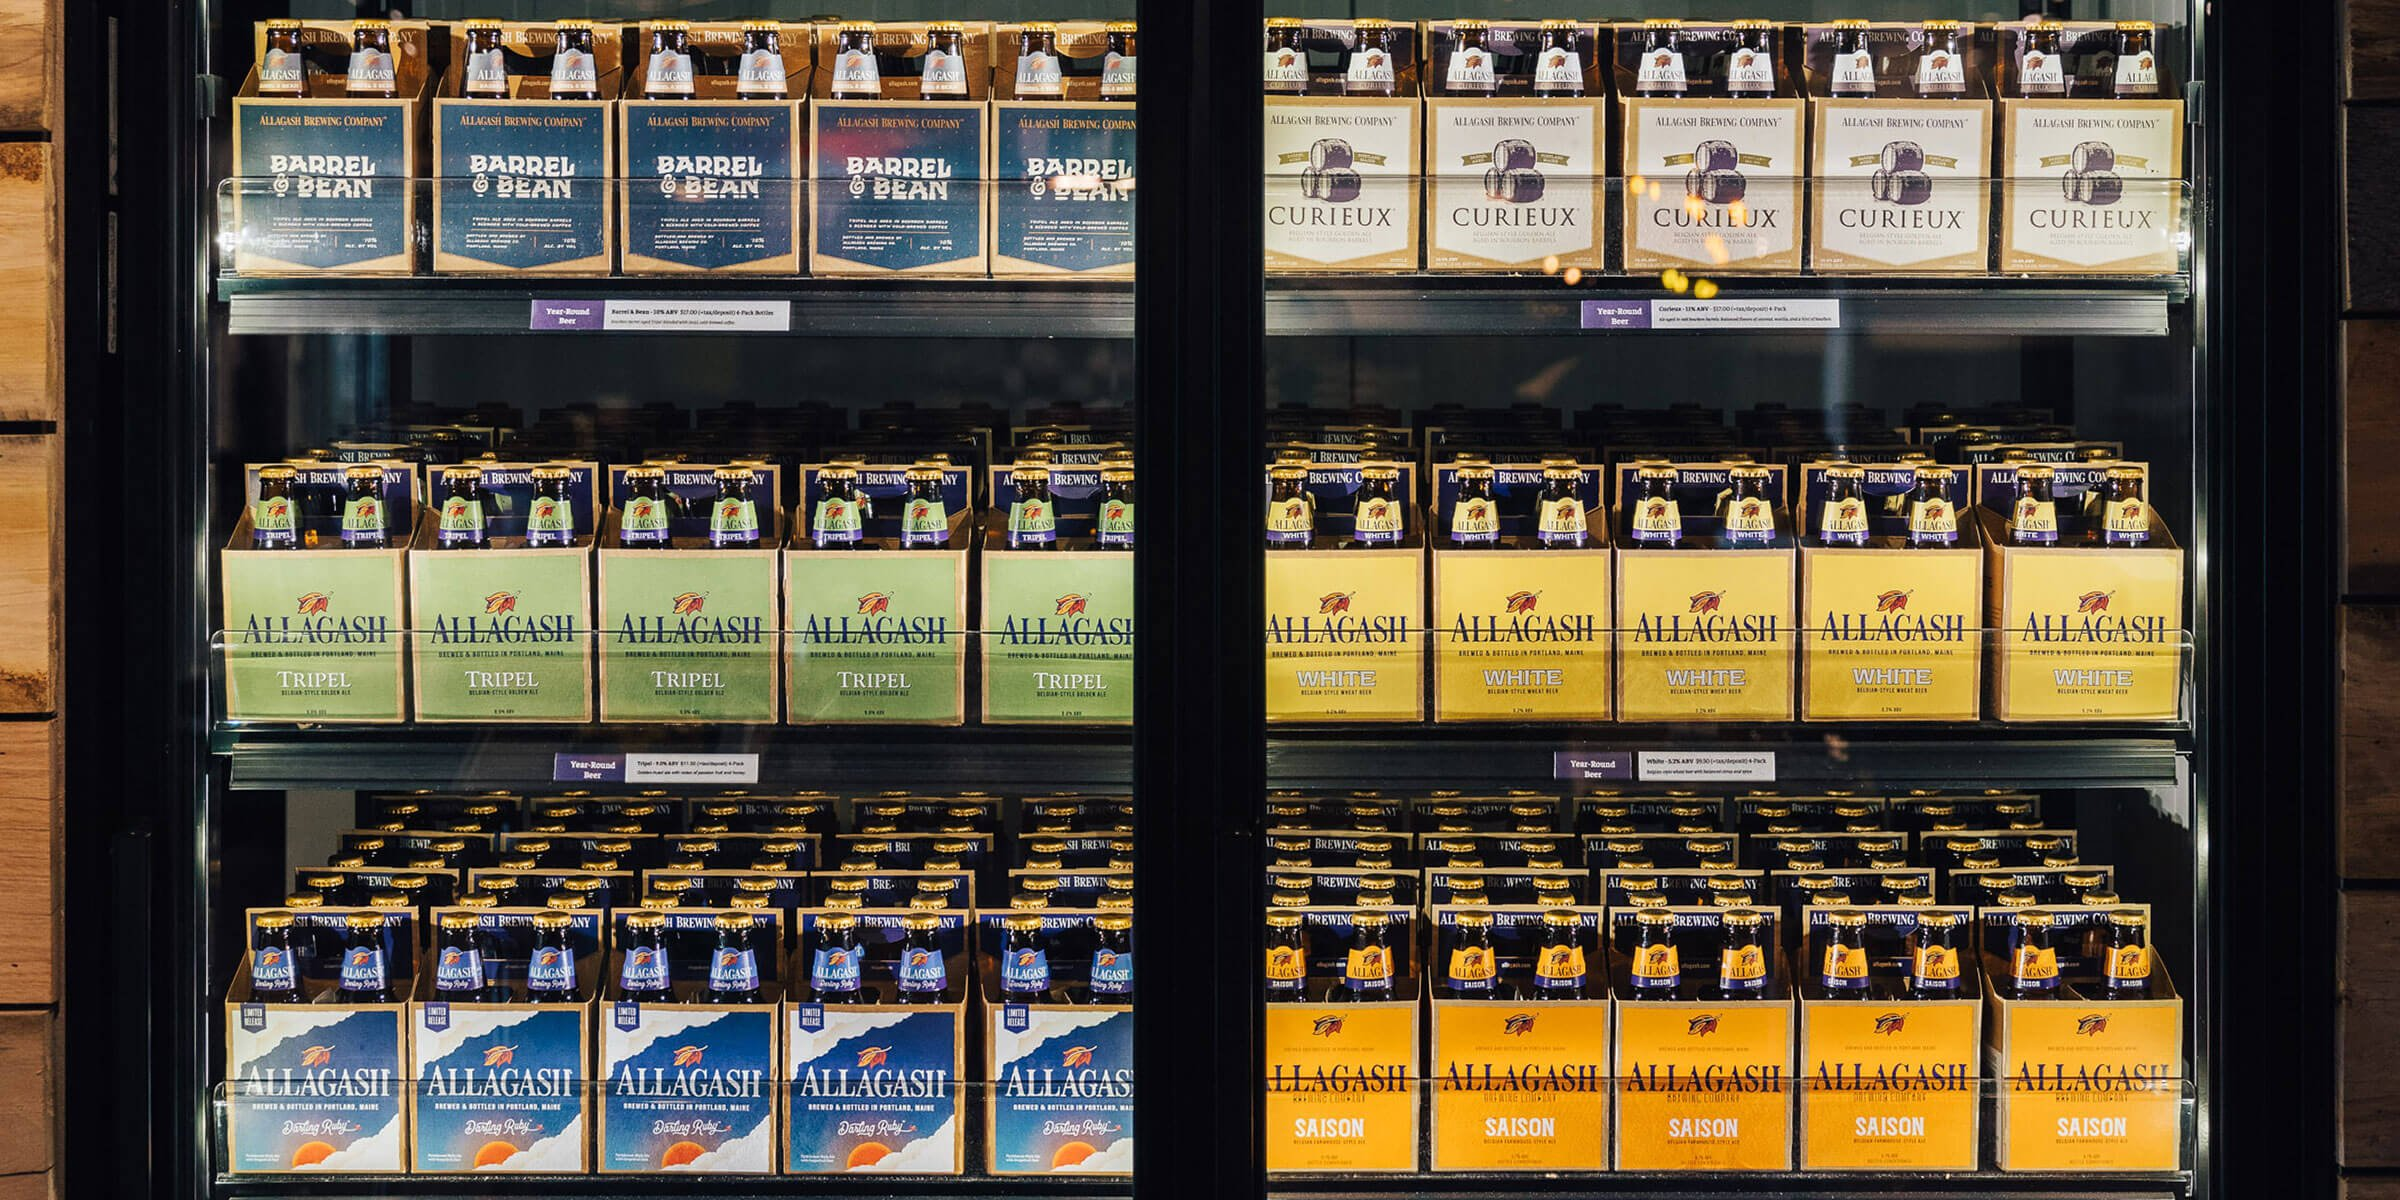 Cooler of four packs of various bottled beers offered by Allagash Brewing Company